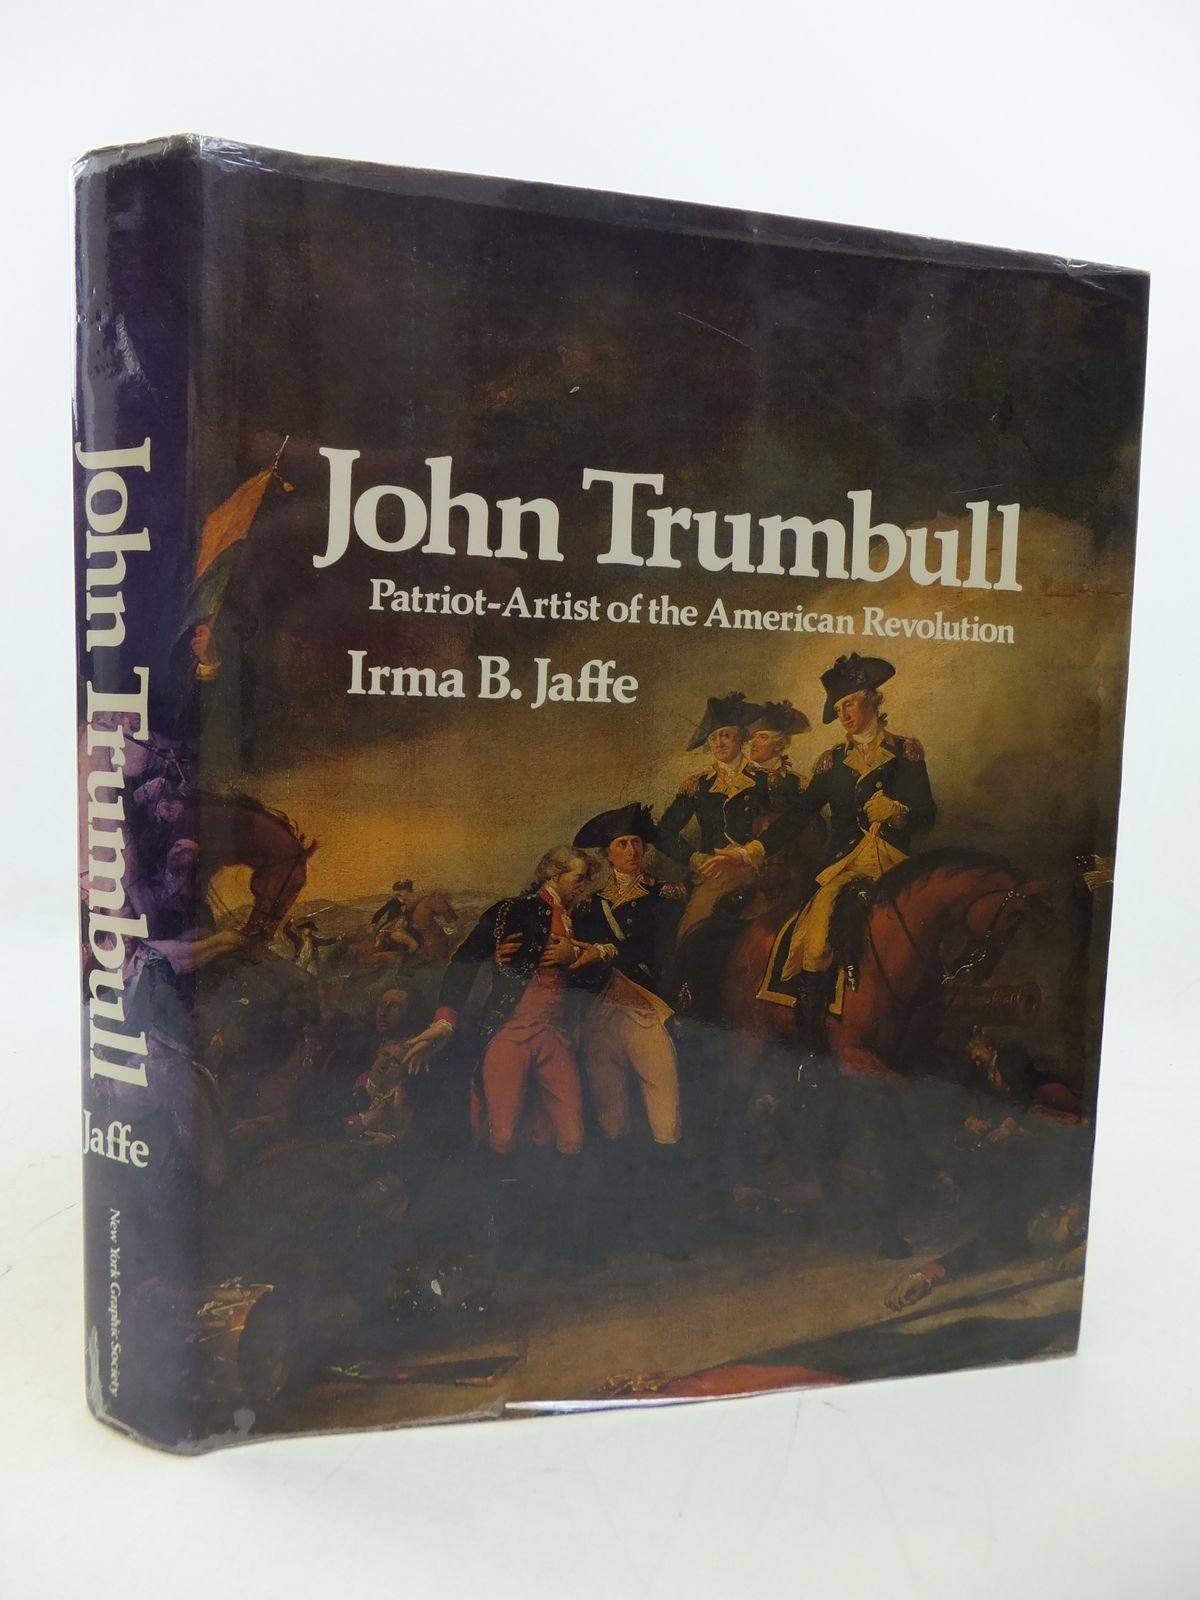 Photo of JOHN TRUMBULL PATRIOT-ARTIST OF THE AMERICAN REVOLUTION written by Jaffe, Irma B. illustrated by Trumbull, John published by New York Graphic Society Publishers (STOCK CODE: 1808331)  for sale by Stella & Rose's Books